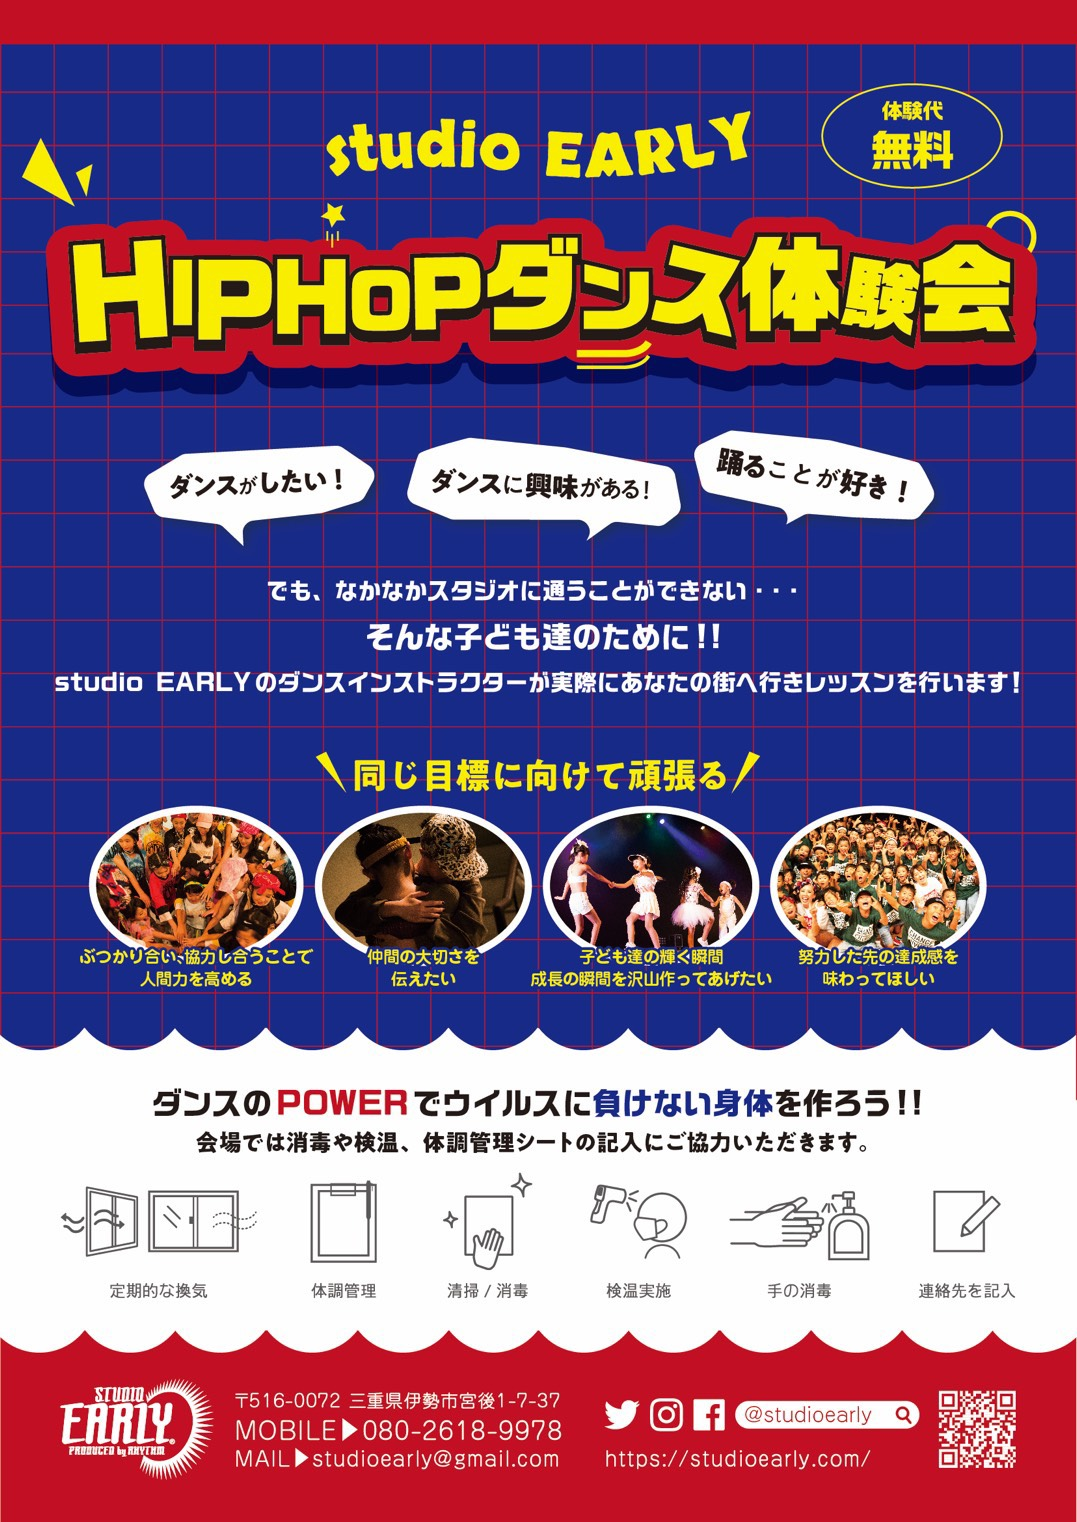 ✨✨HIPHOPダンス無料体験会開催決定!!✨✨